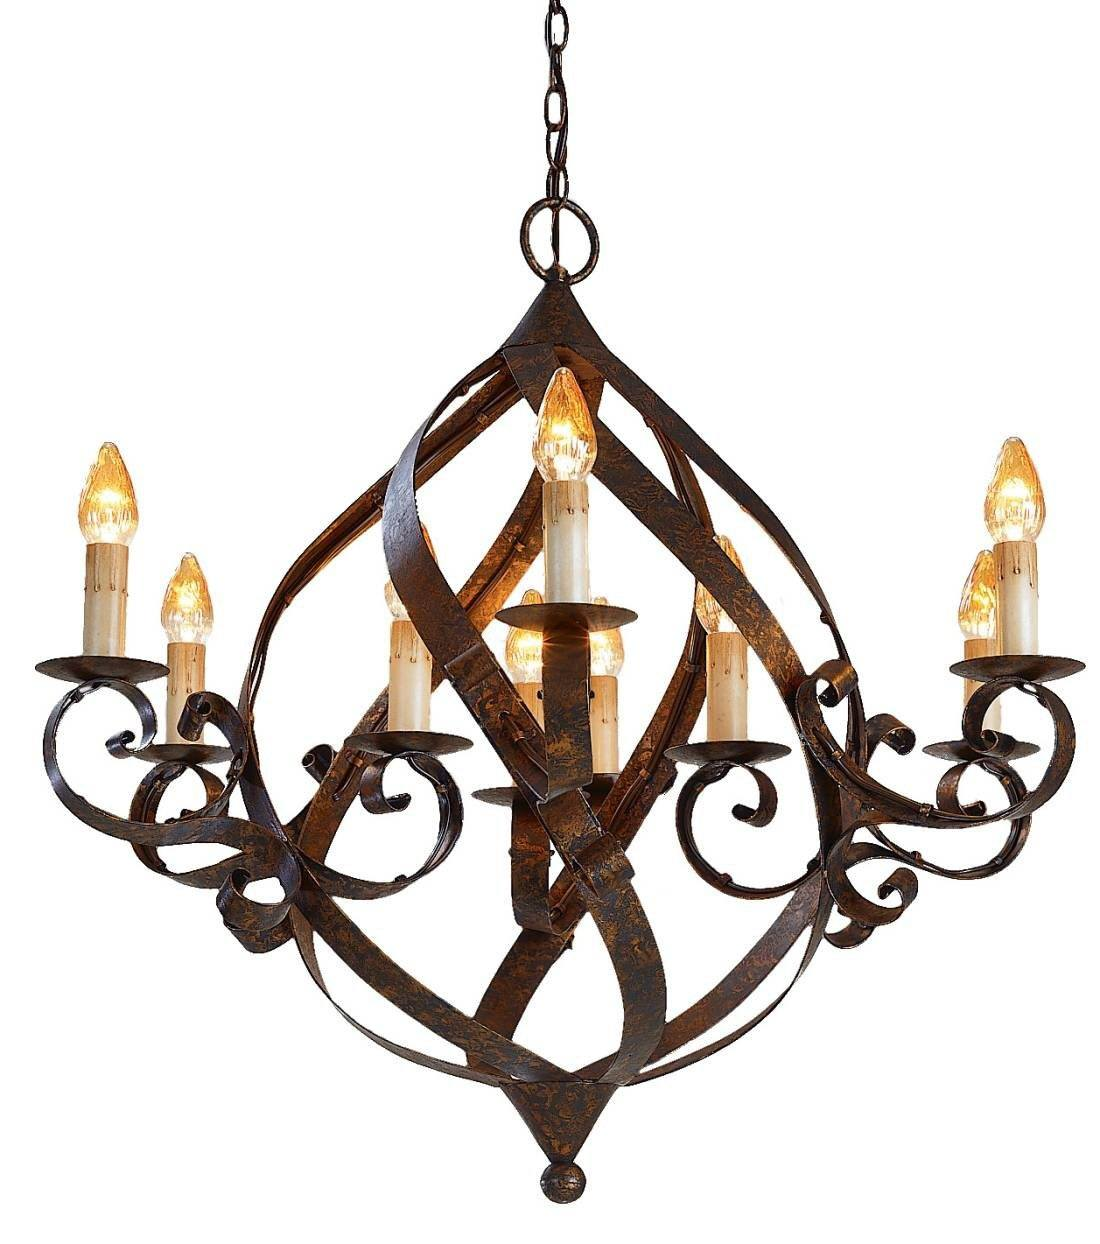 Currey and Company Gramercy Chandelier 9528 - LOVECUP